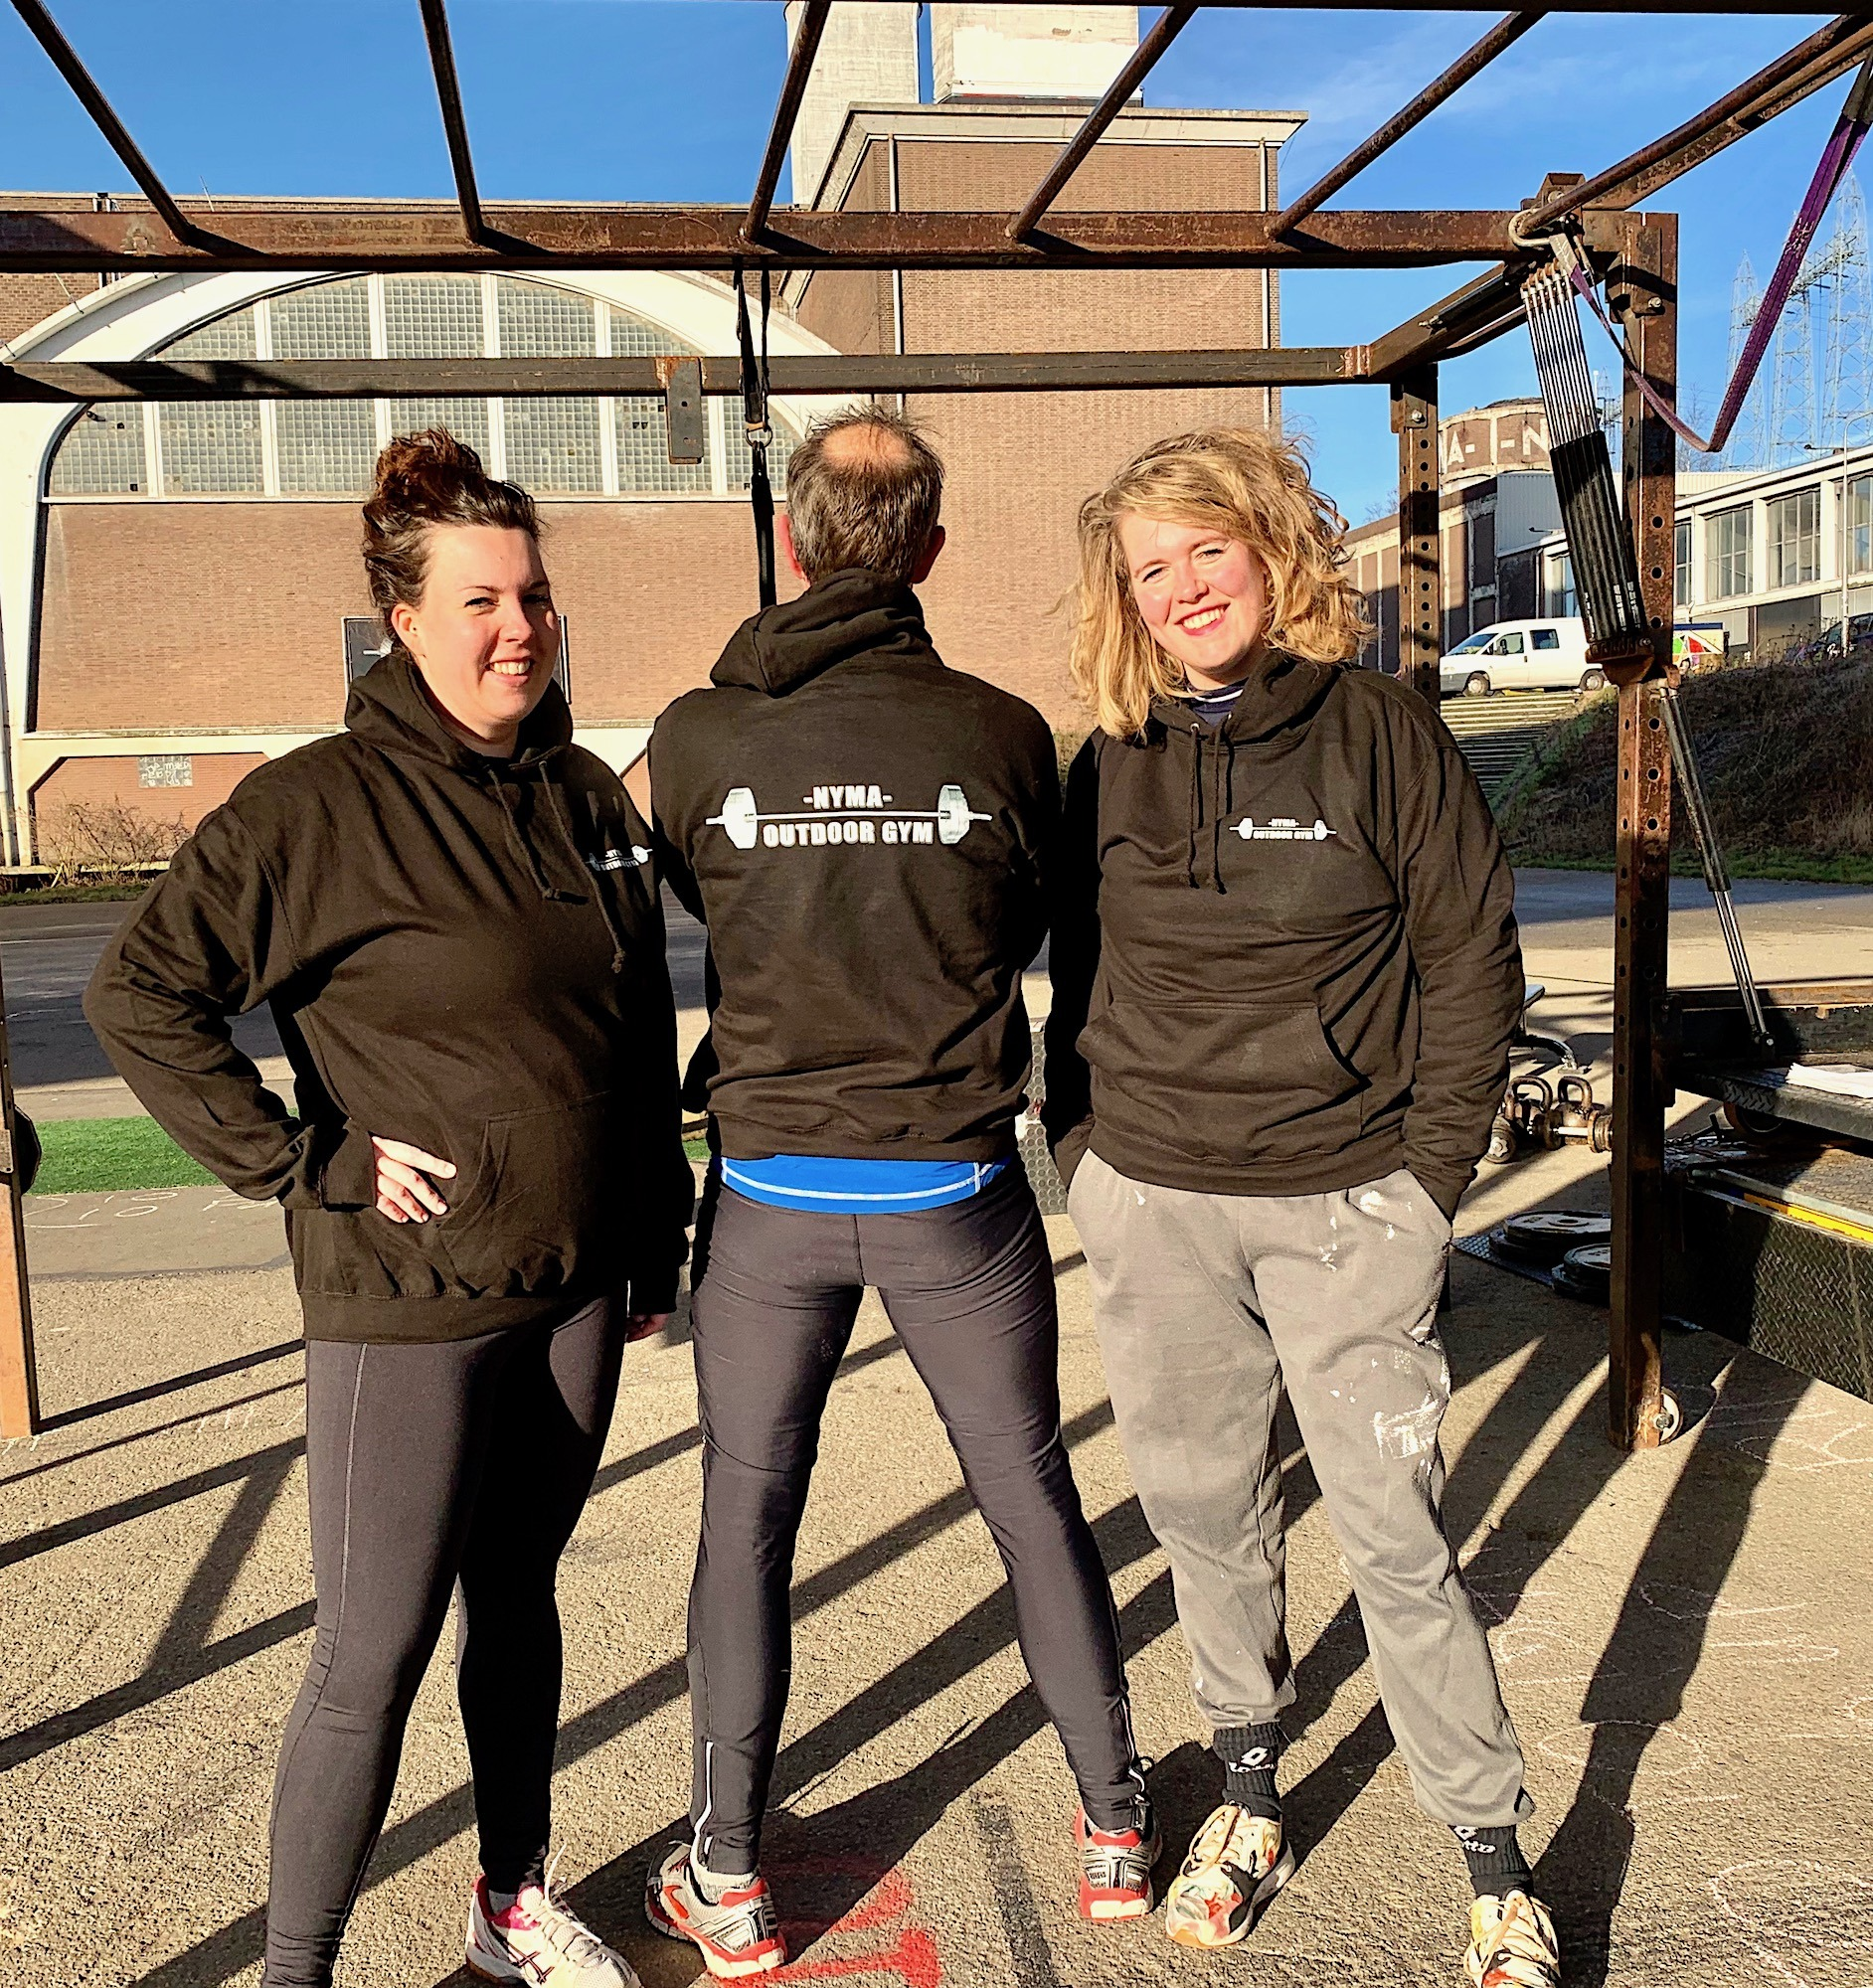 NYMA OUTDOOR GYM 18-01-2019